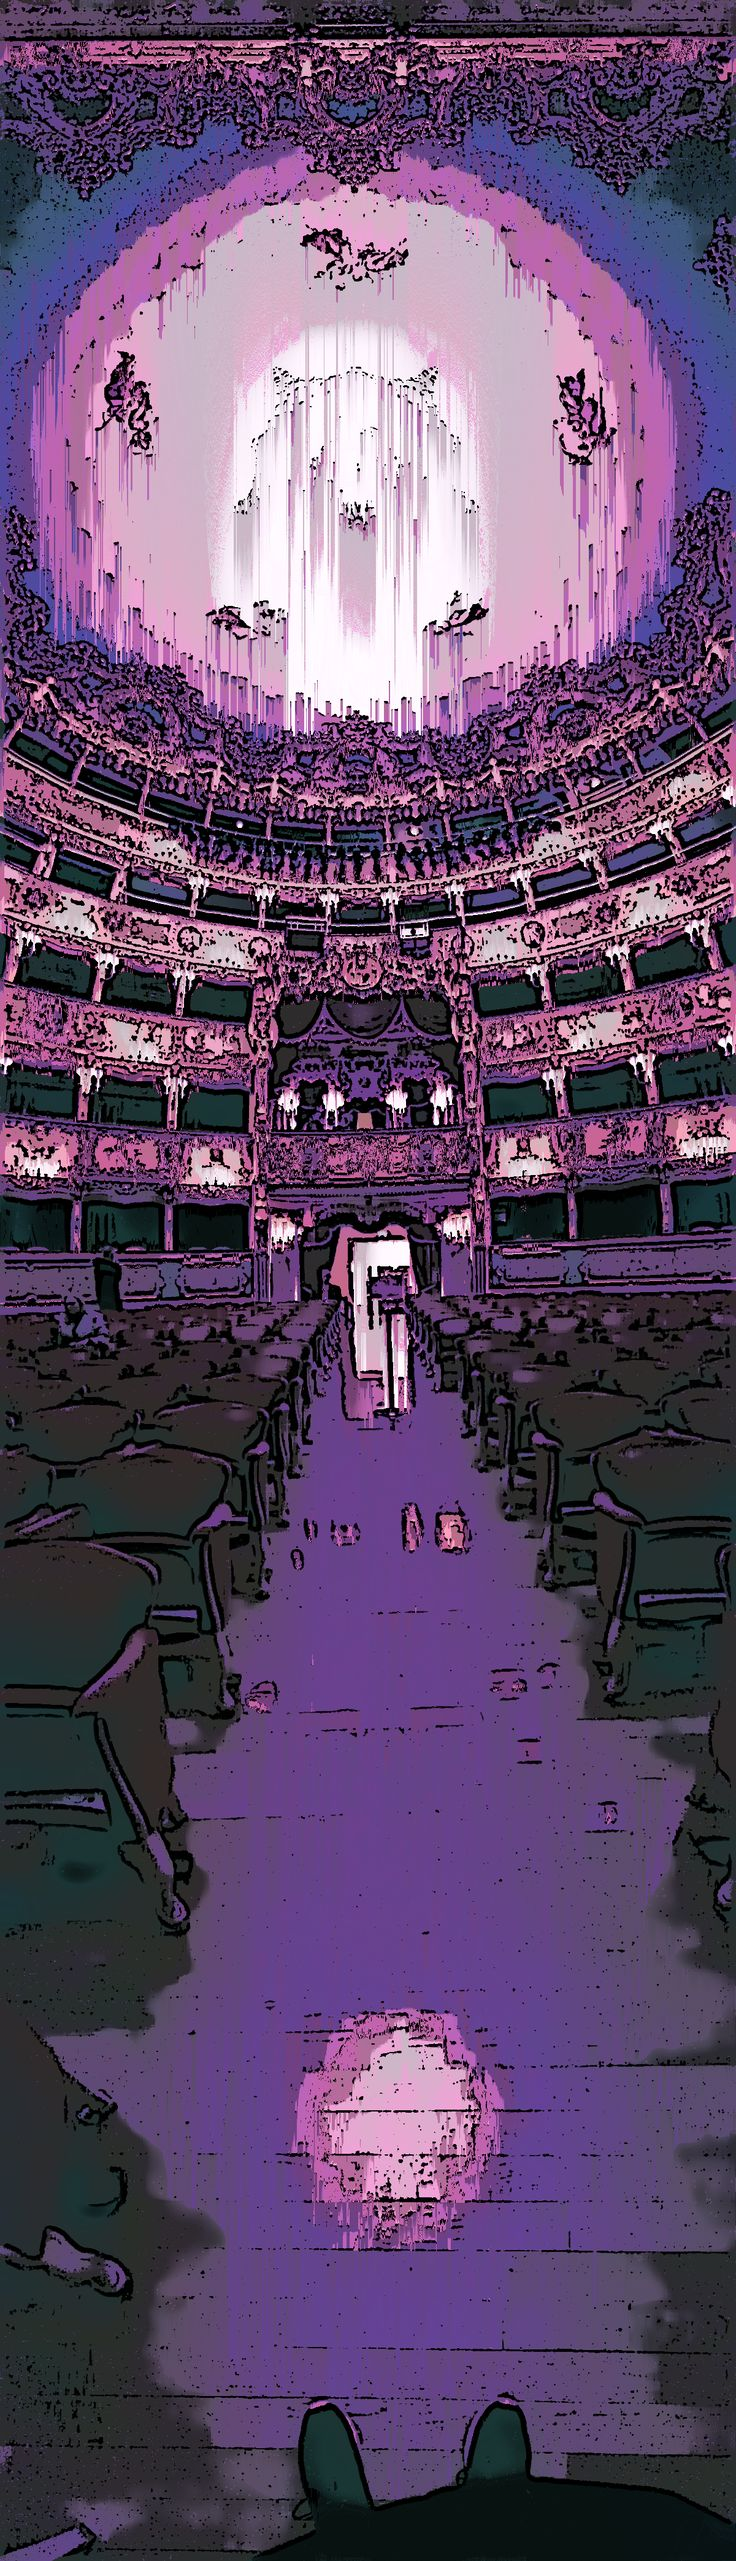 Venezia - Teatro La Fenice (i.redd.it) submitted by Billy-Milligan to /r/glitch_art 0 comments original   - #Art - Abstract Surreal and Fantasy Artists - #Drawings Doodles and Sketches - Oil and Watercolor #Paintings - Digital Arts - Psychedelic Illustrations - Imaginary Worlds Architecture Monsters Animals Technology Characters and Landscapes - HD #Wallpapers by Visualinspo